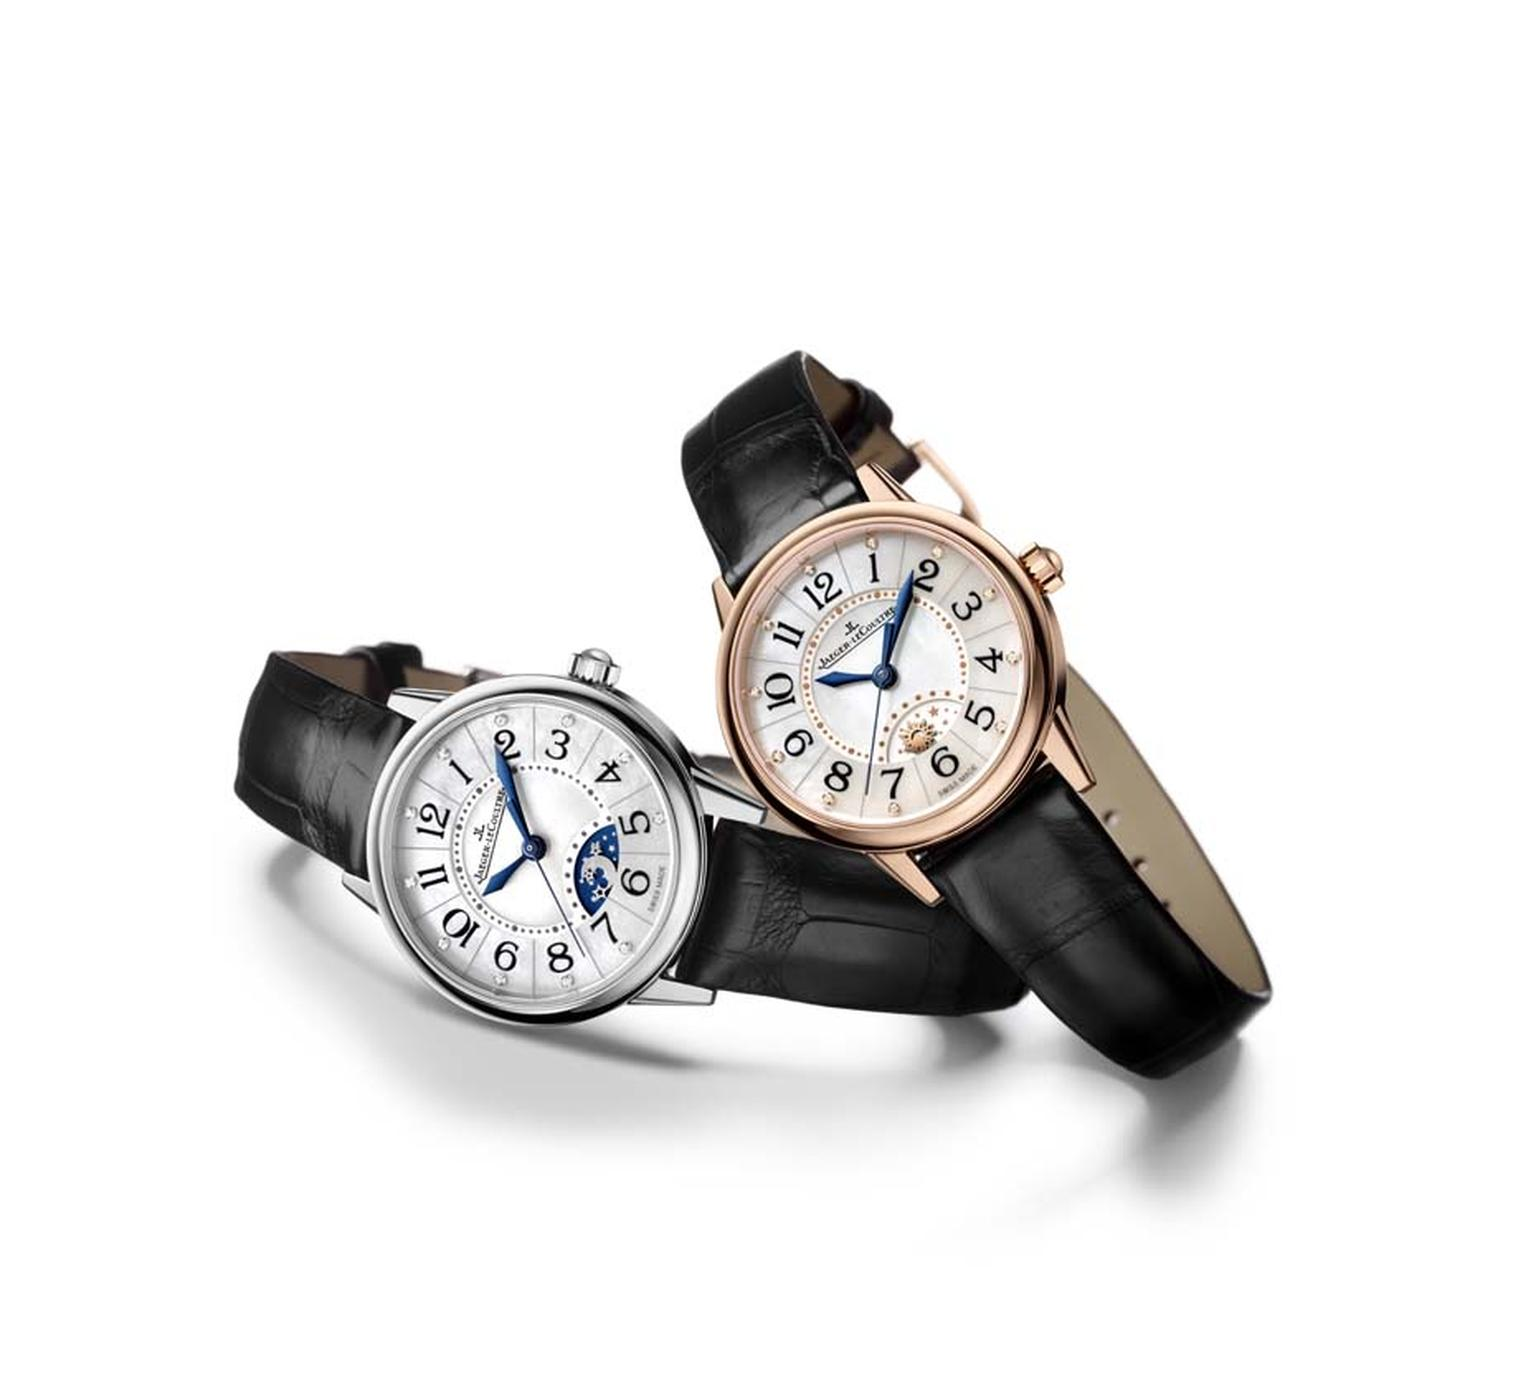 Jaeger-LeCoultre Rendez-Vous Night and Day in pink gold and steel